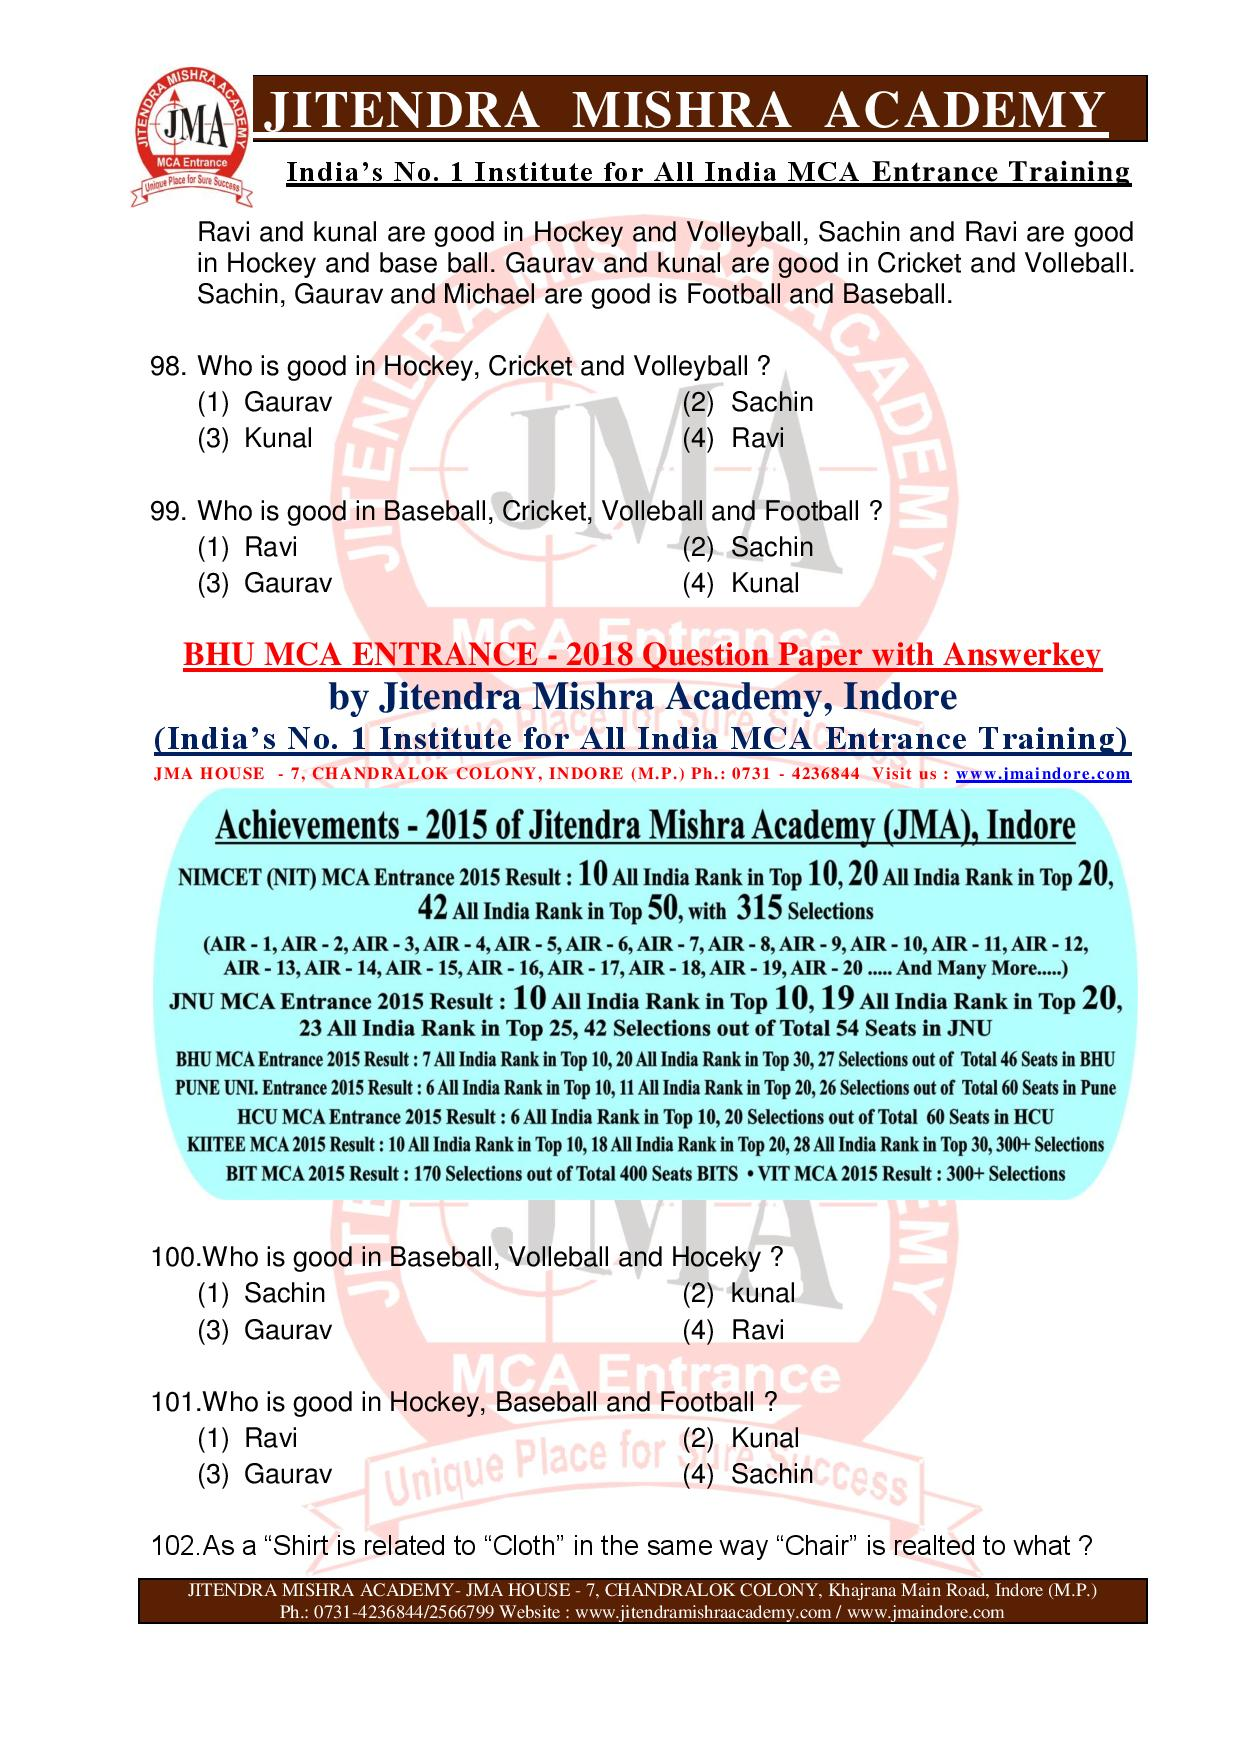 BHU MCA 2018 QUESTION PAPER12-page-031